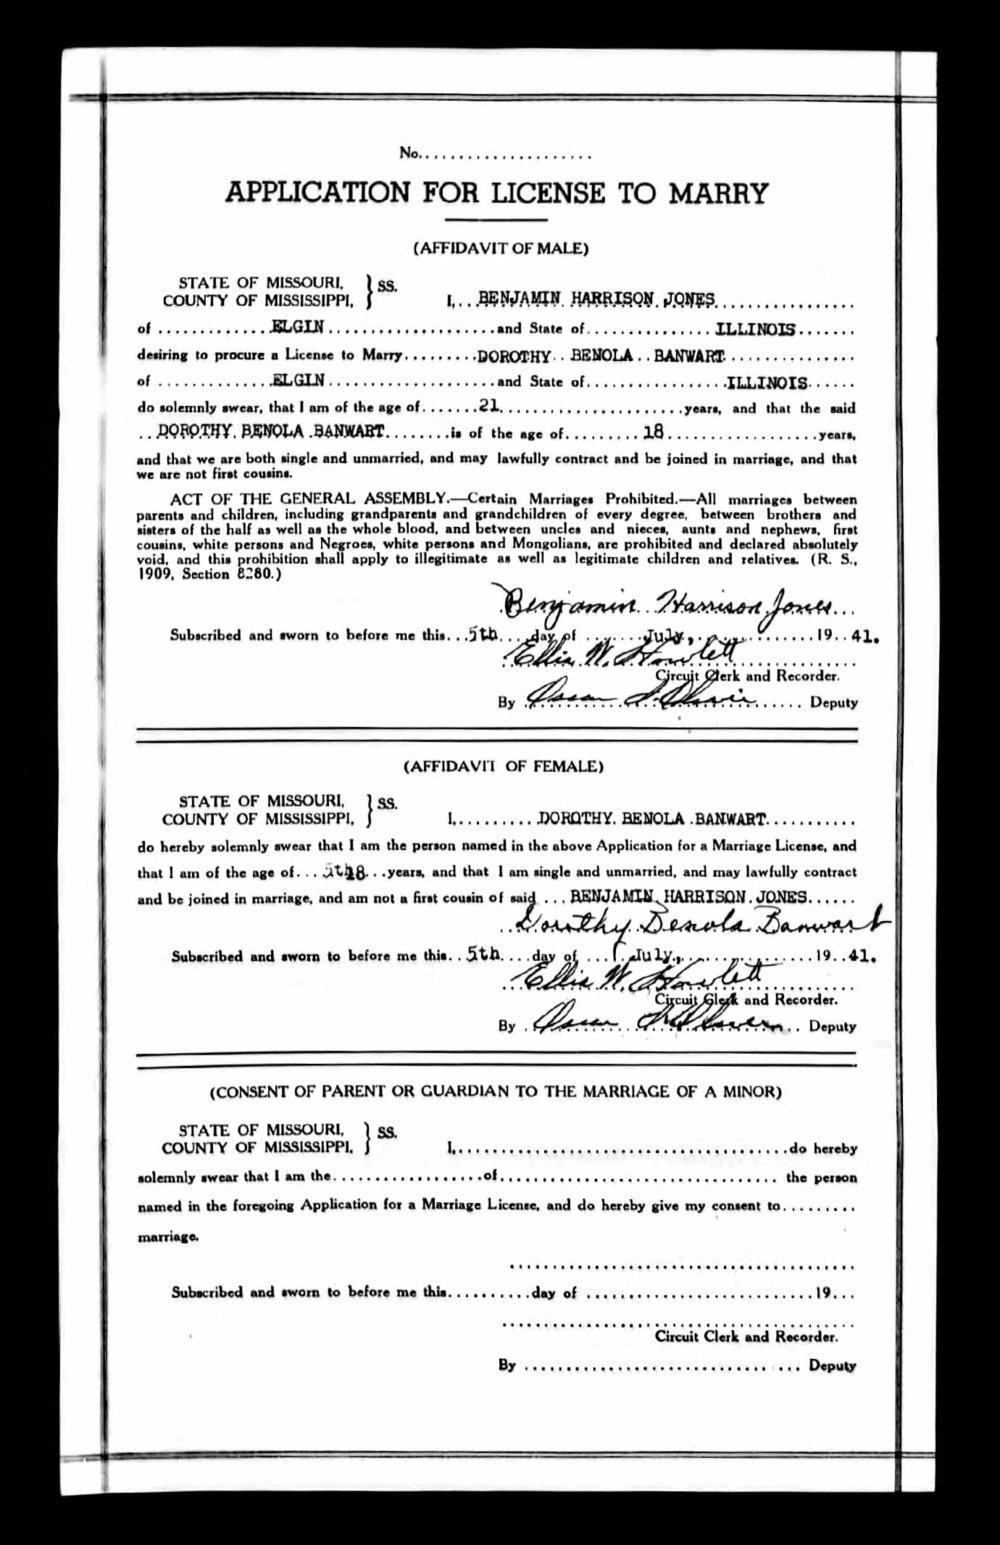 Grandma and Grandpa Jones' Marriage License.jpg